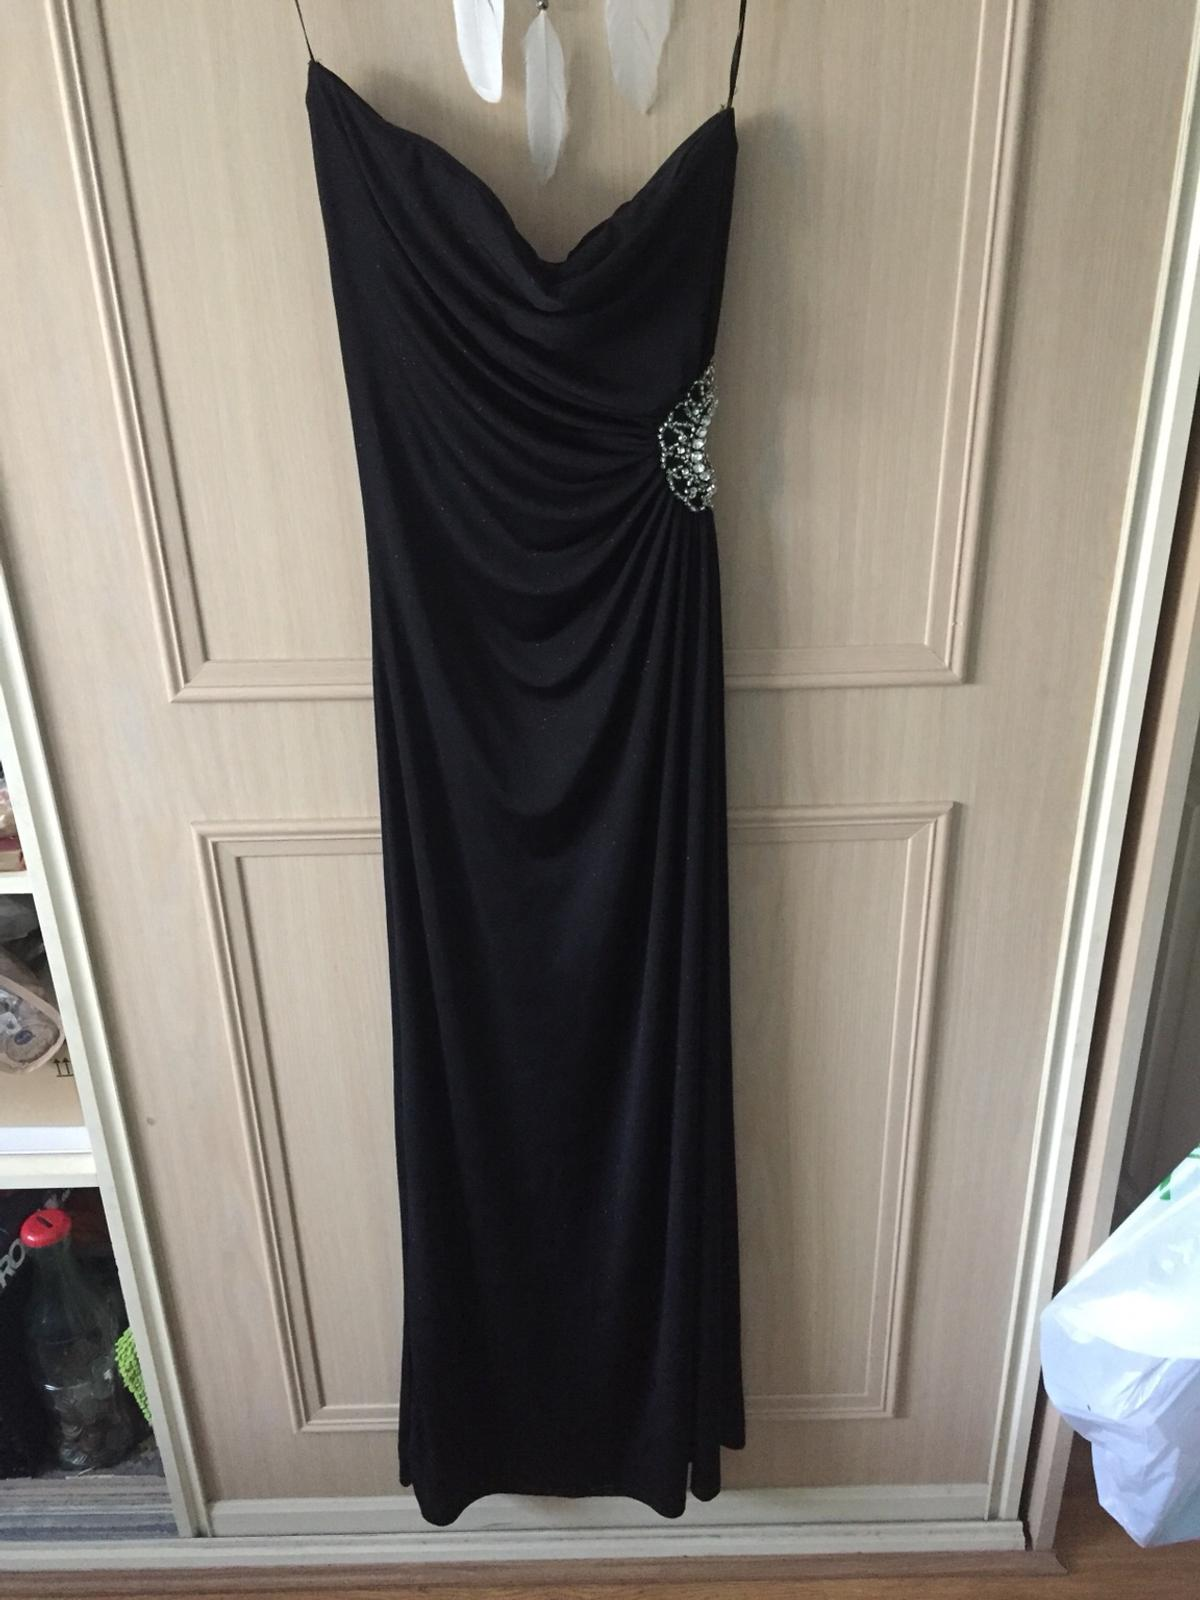 Cut out in the side with diamanté detail